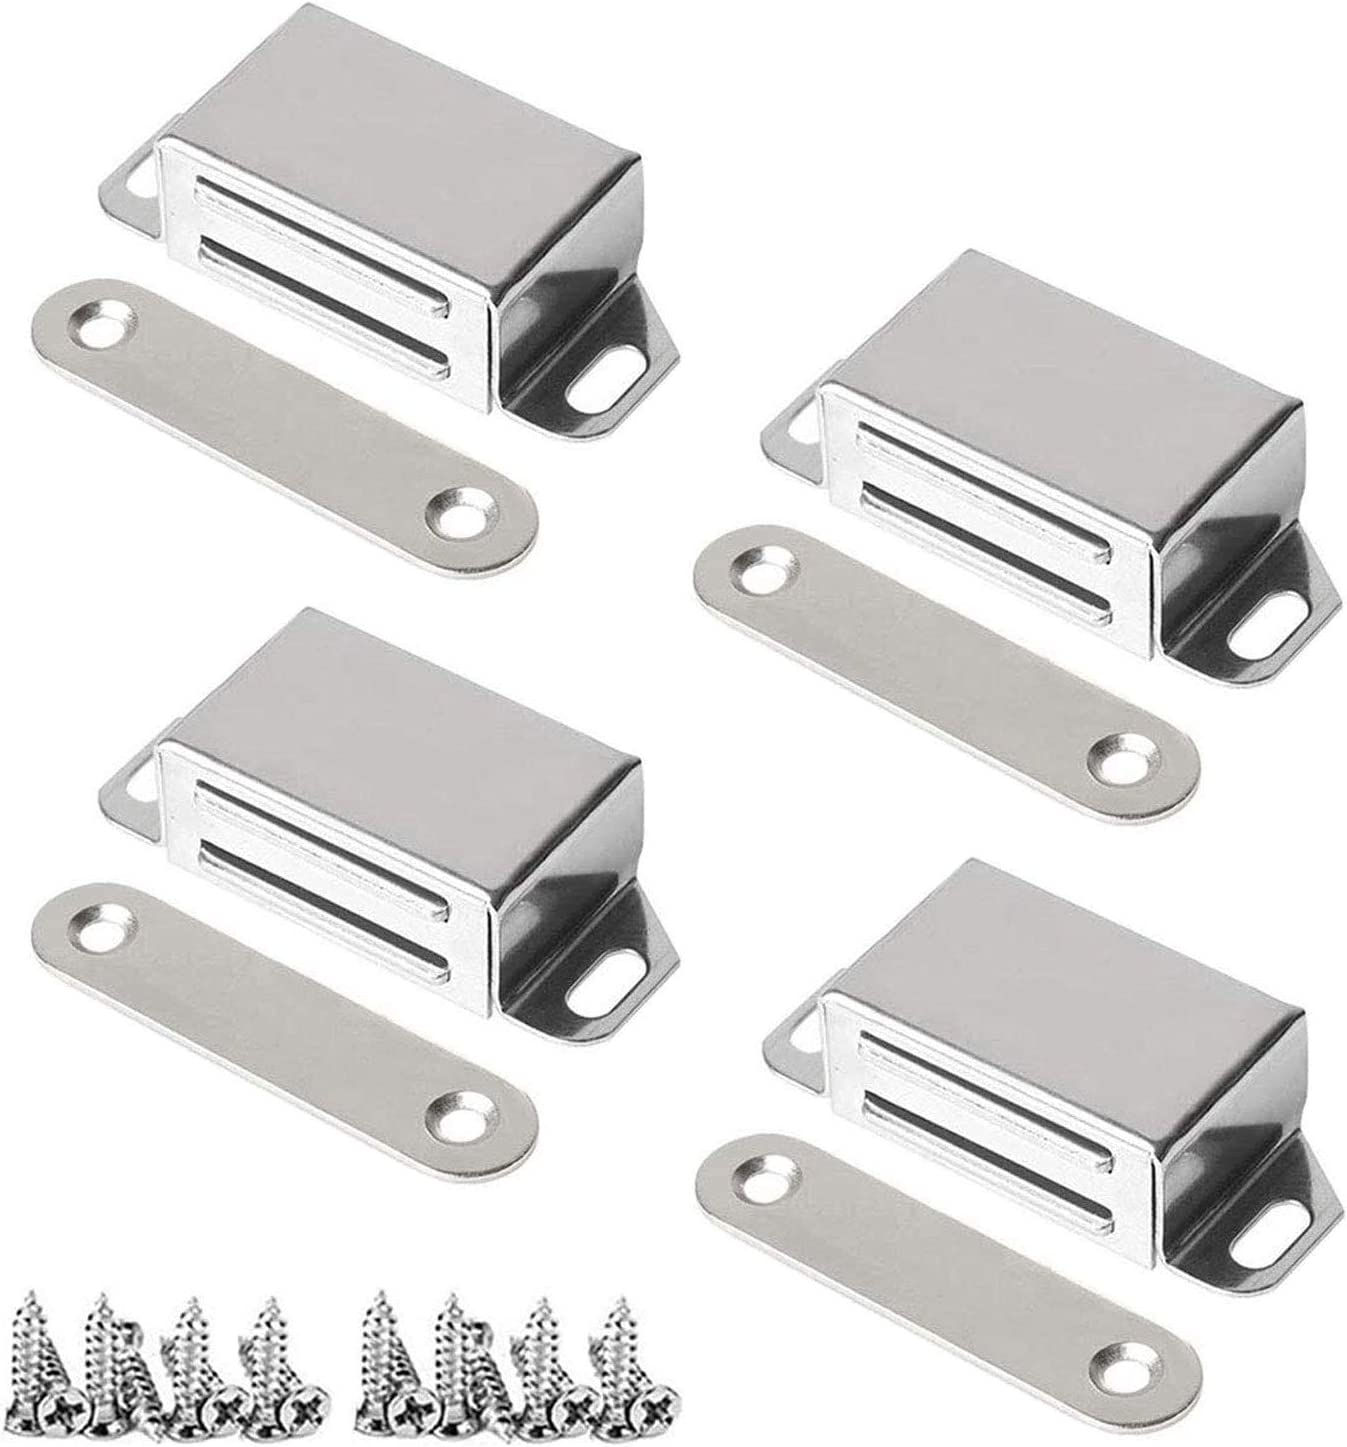 Magnetic Door Catch Cheap mail Max 71% OFF order sales 20lbs Pulling Cat Cabinet Magnet Force